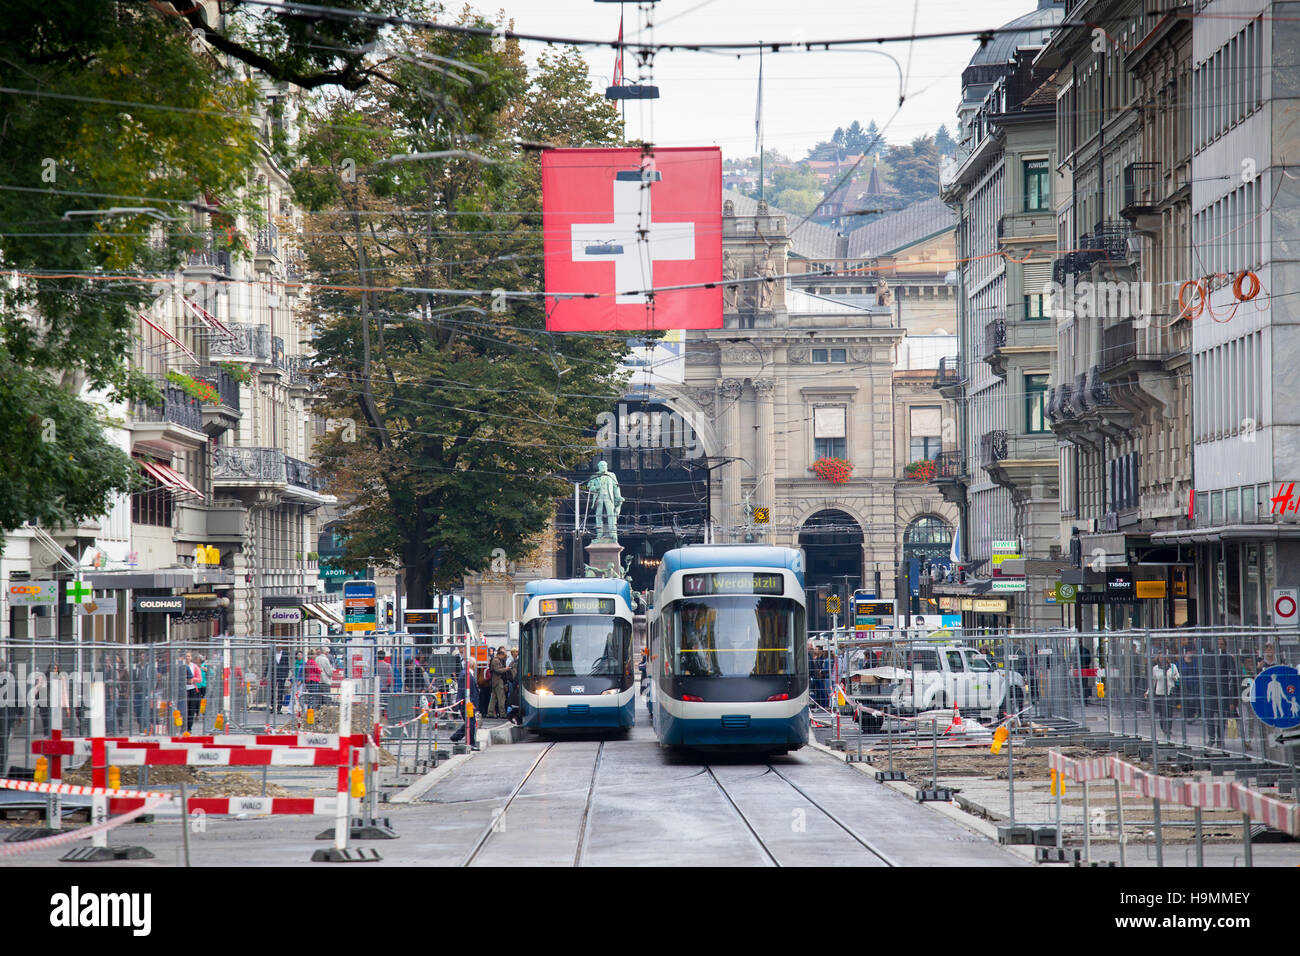 Zurich Public Transport (VBZ), Zurich, Switzerland - Stock Image